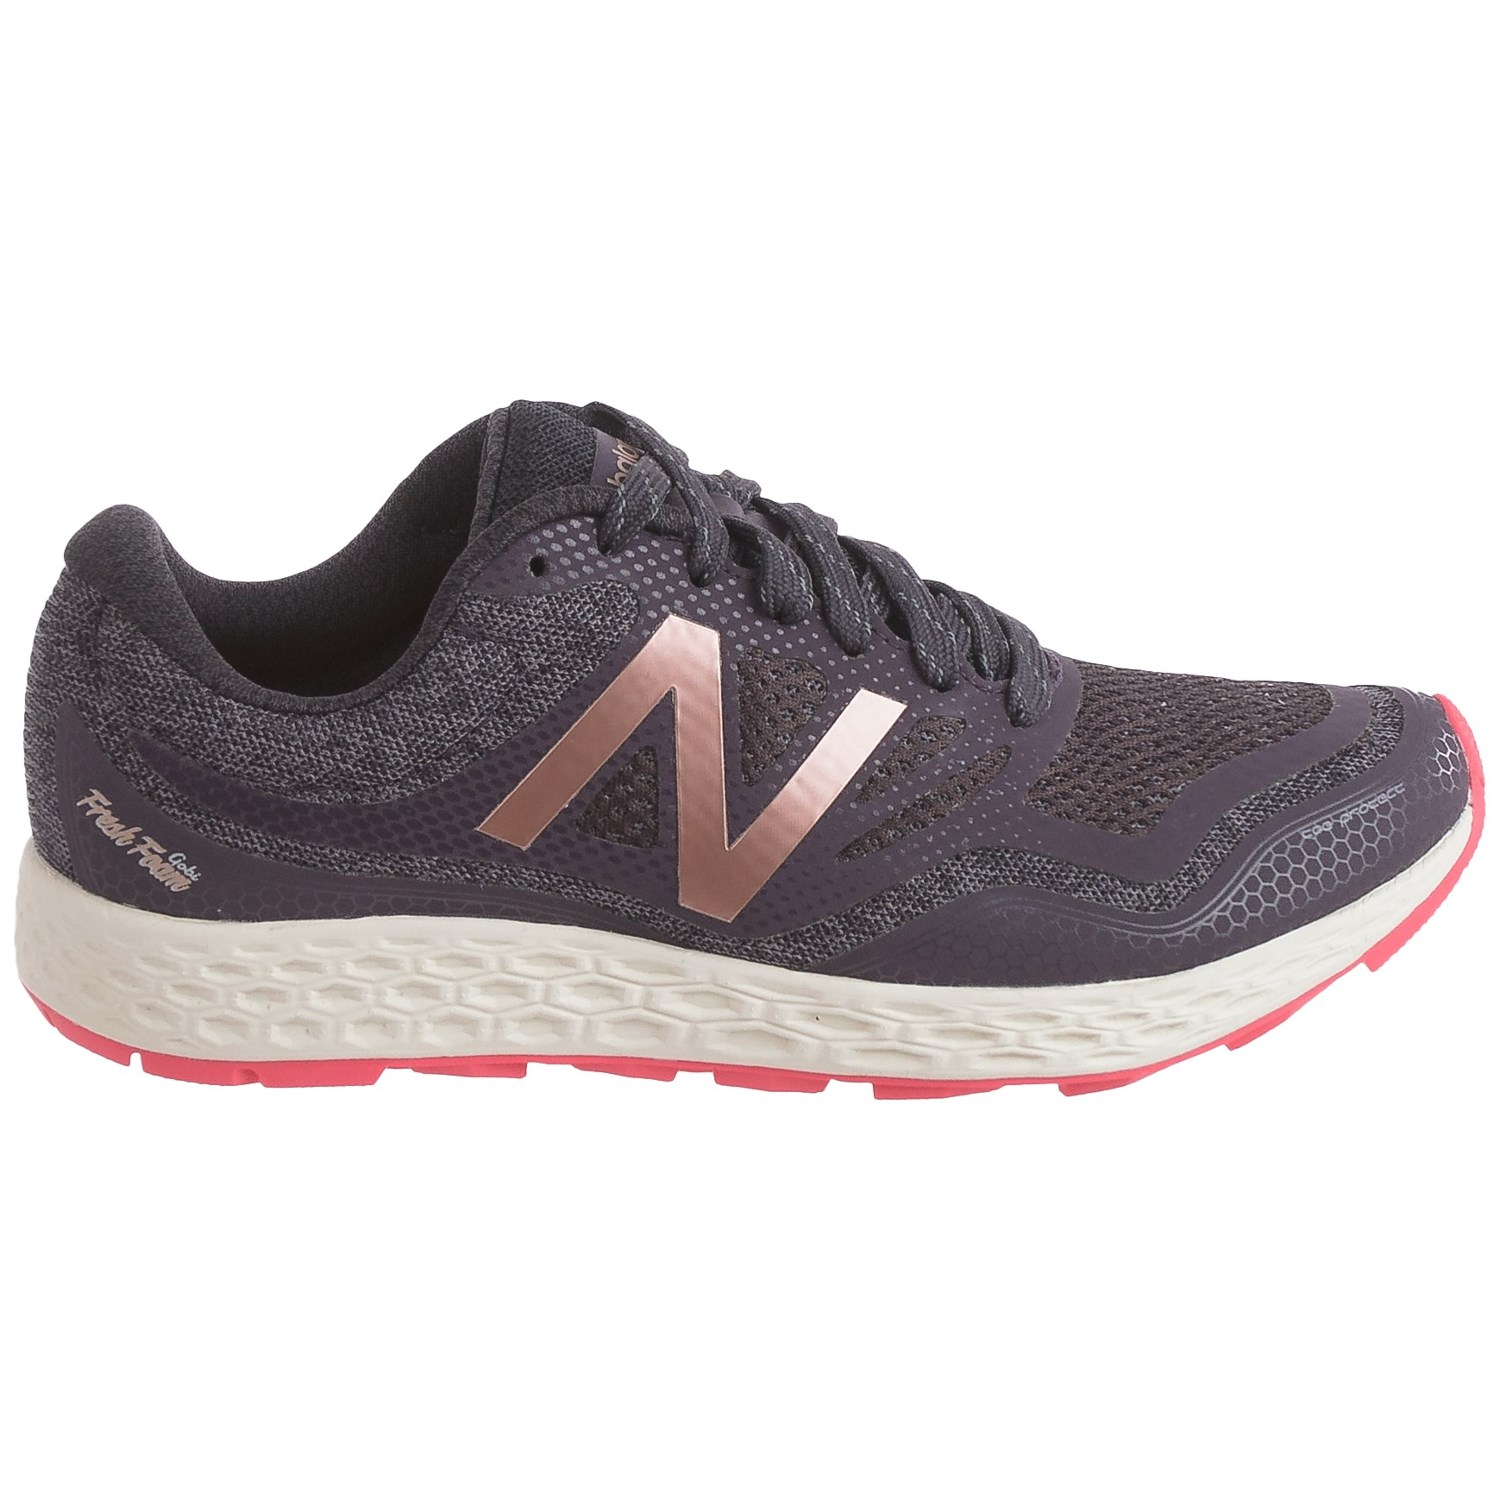 New Balance Women's Fresh Foam Gobi Trail Running Shoe, Grey/Pink (12 B(M) US)